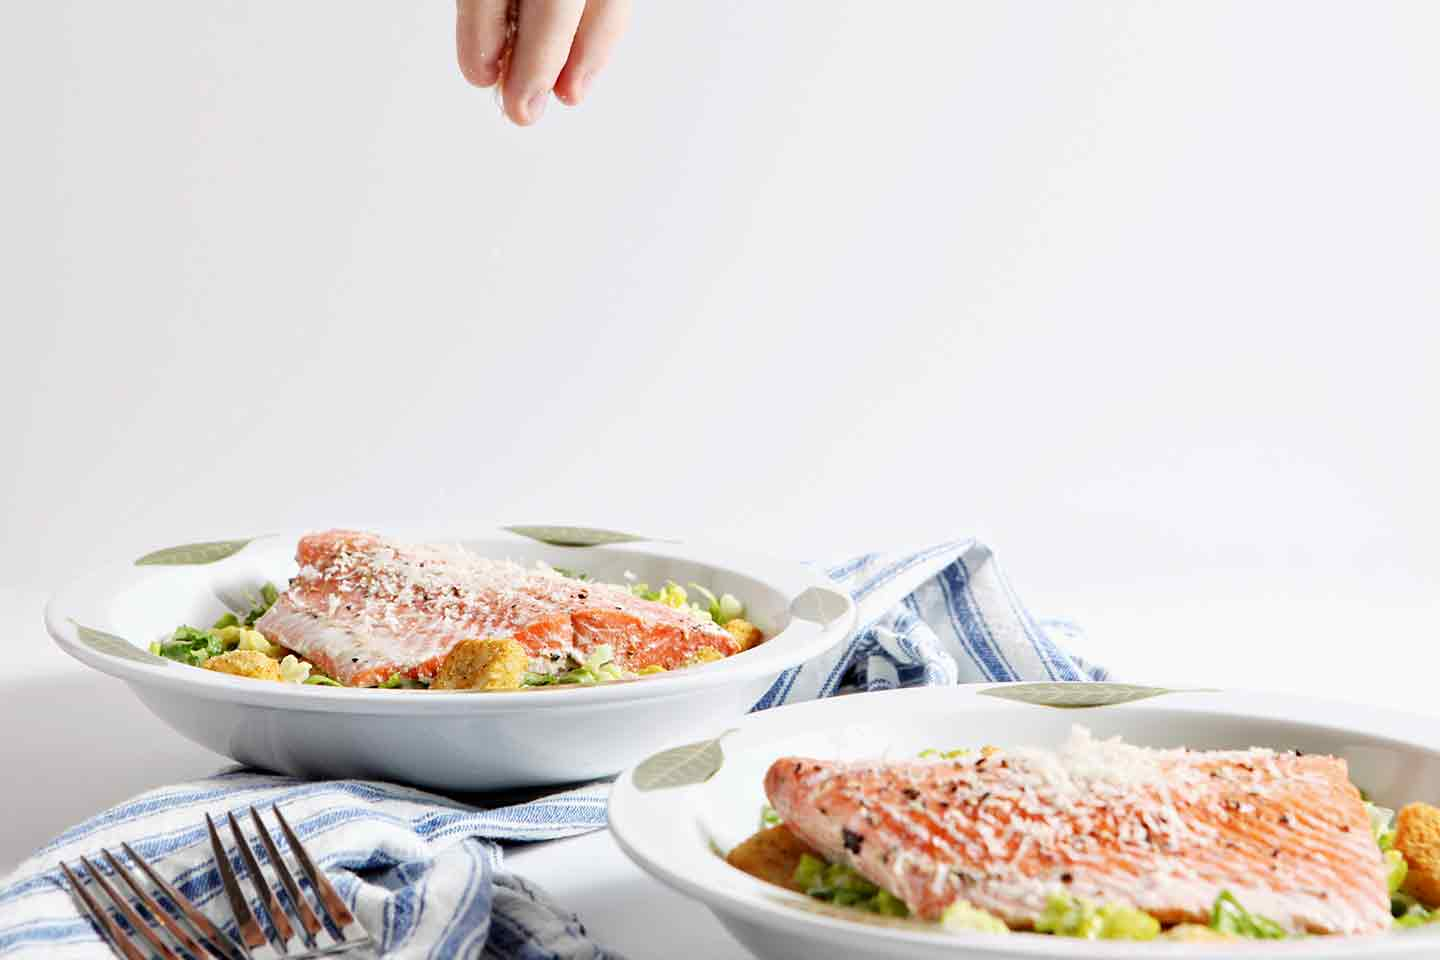 Oven Poached Salmon Caesar Salads being sprinkled with additional parmesan cheese before serving